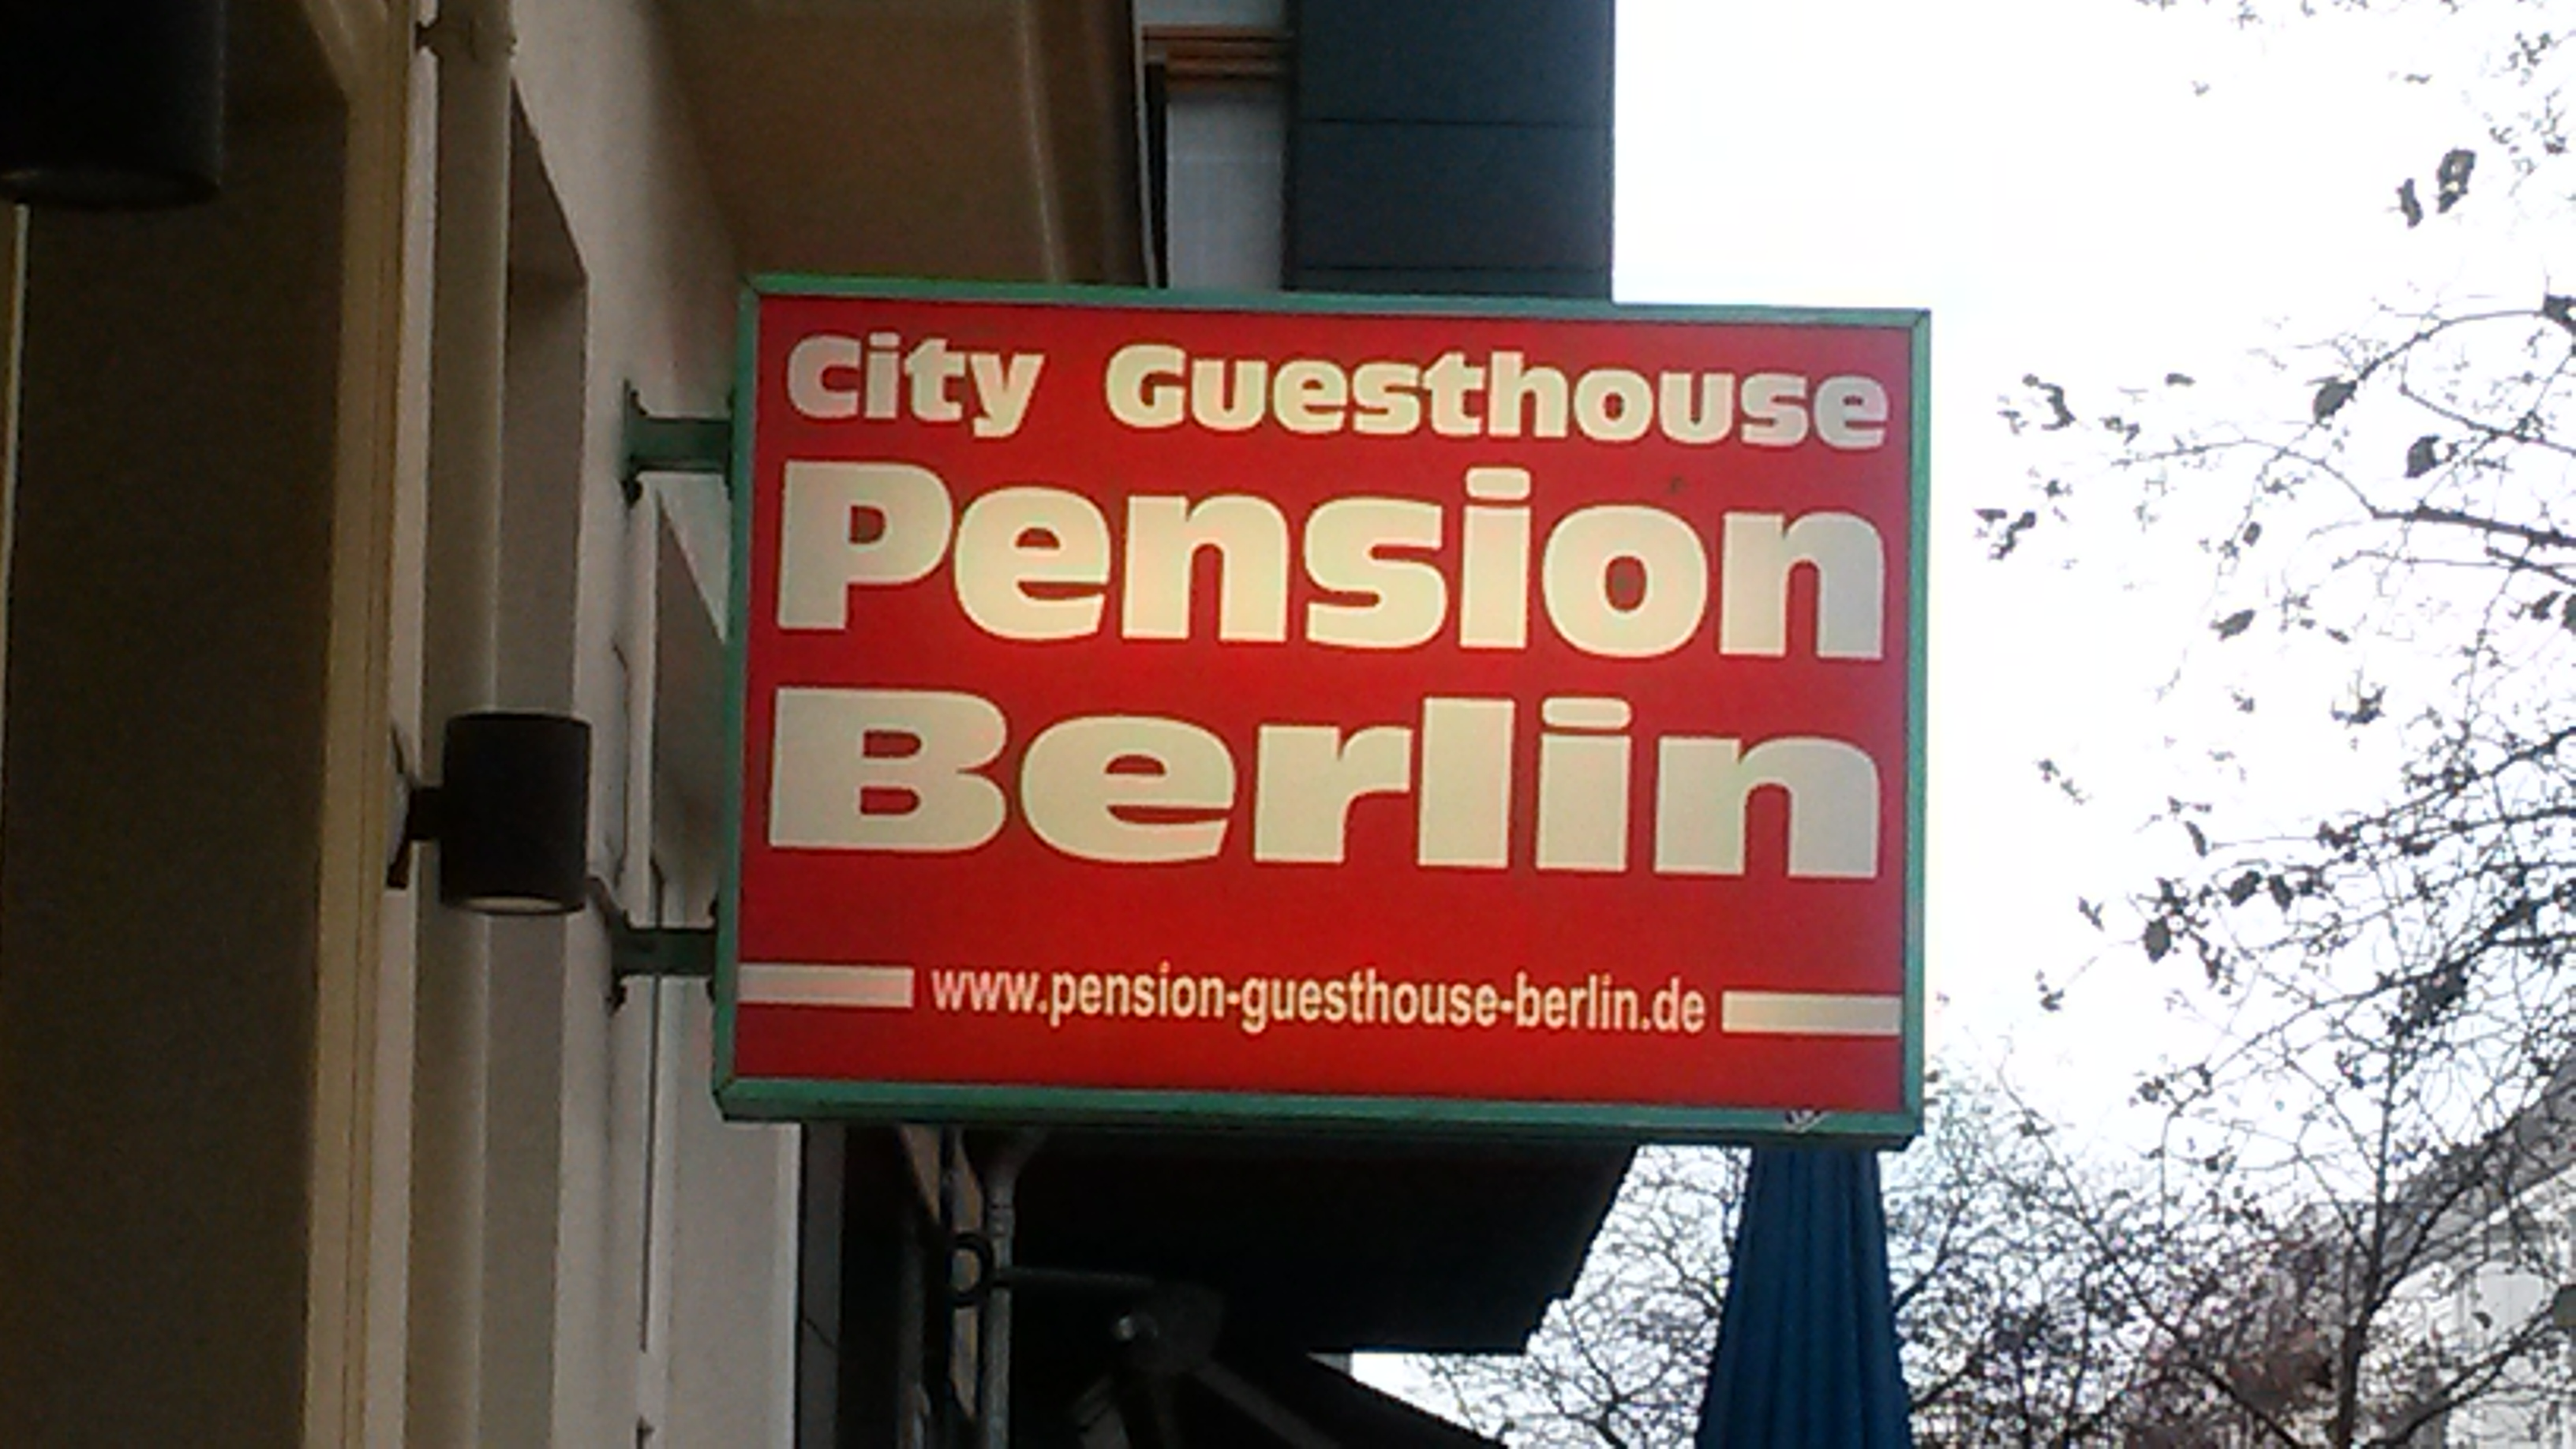 City Guesthouse Pension Berlin und Cafe Restaurant Shan Shan